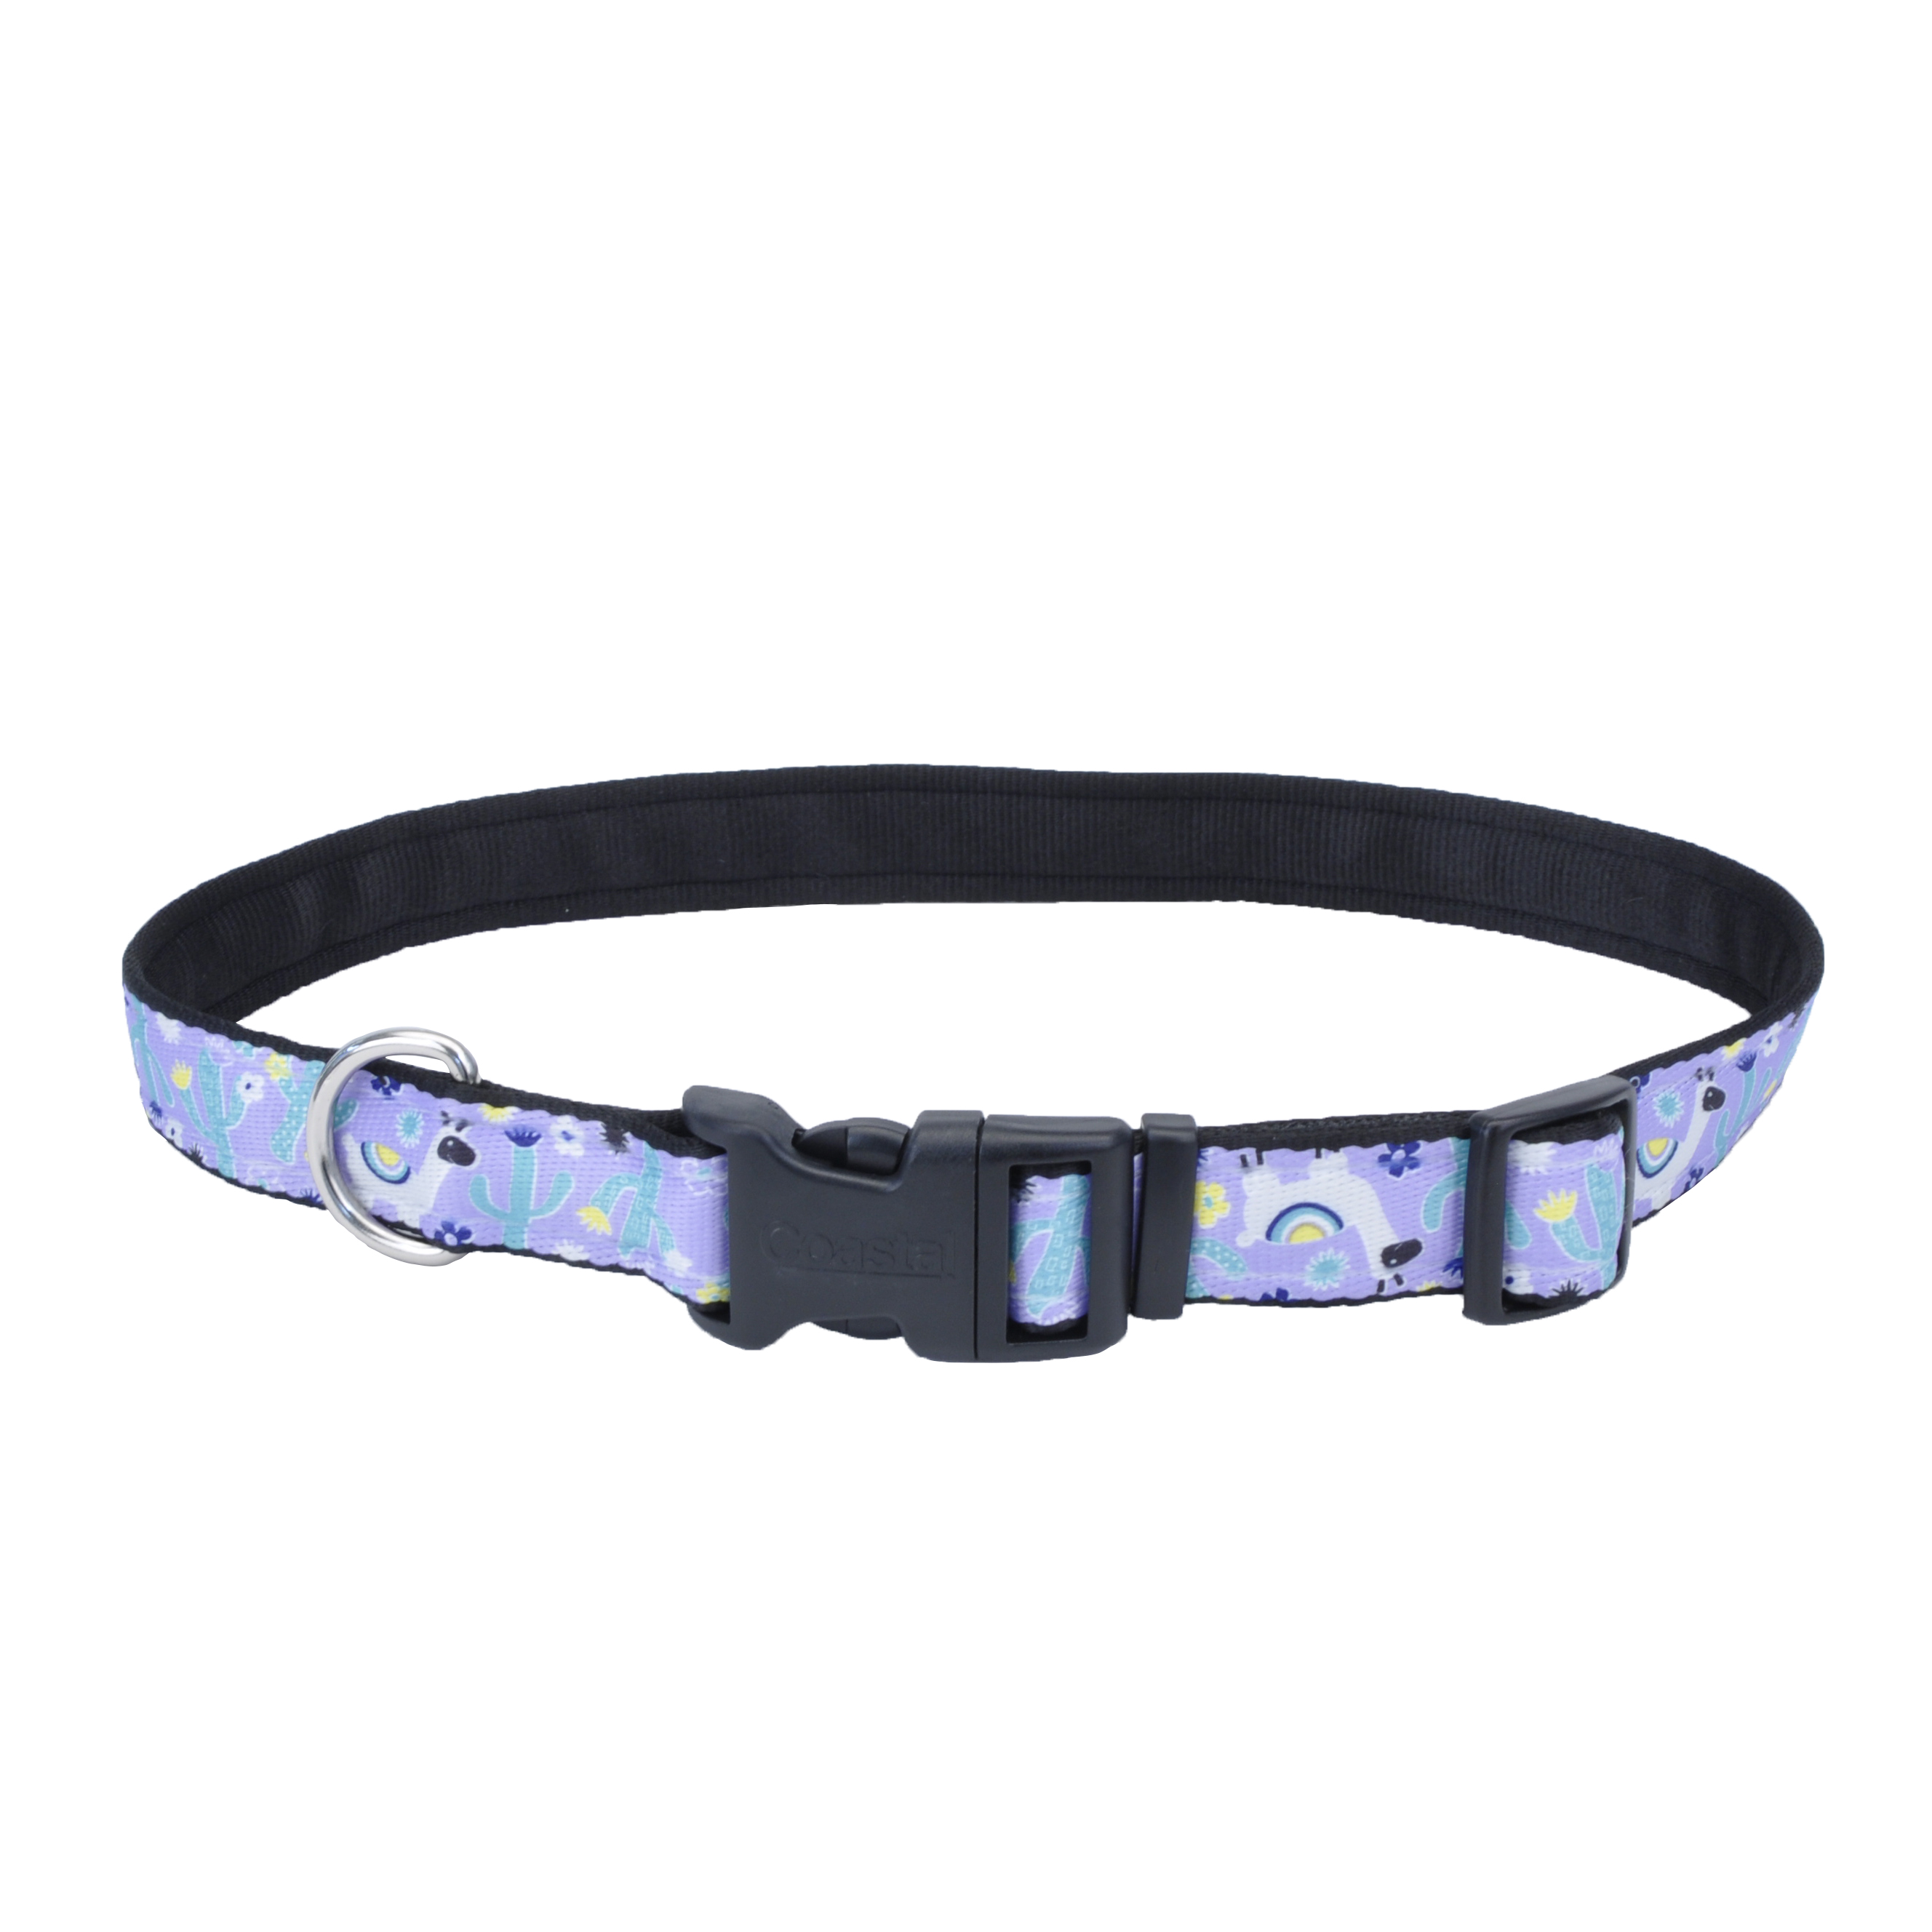 Authorized Dealer Exclusive Styles Dog Collar